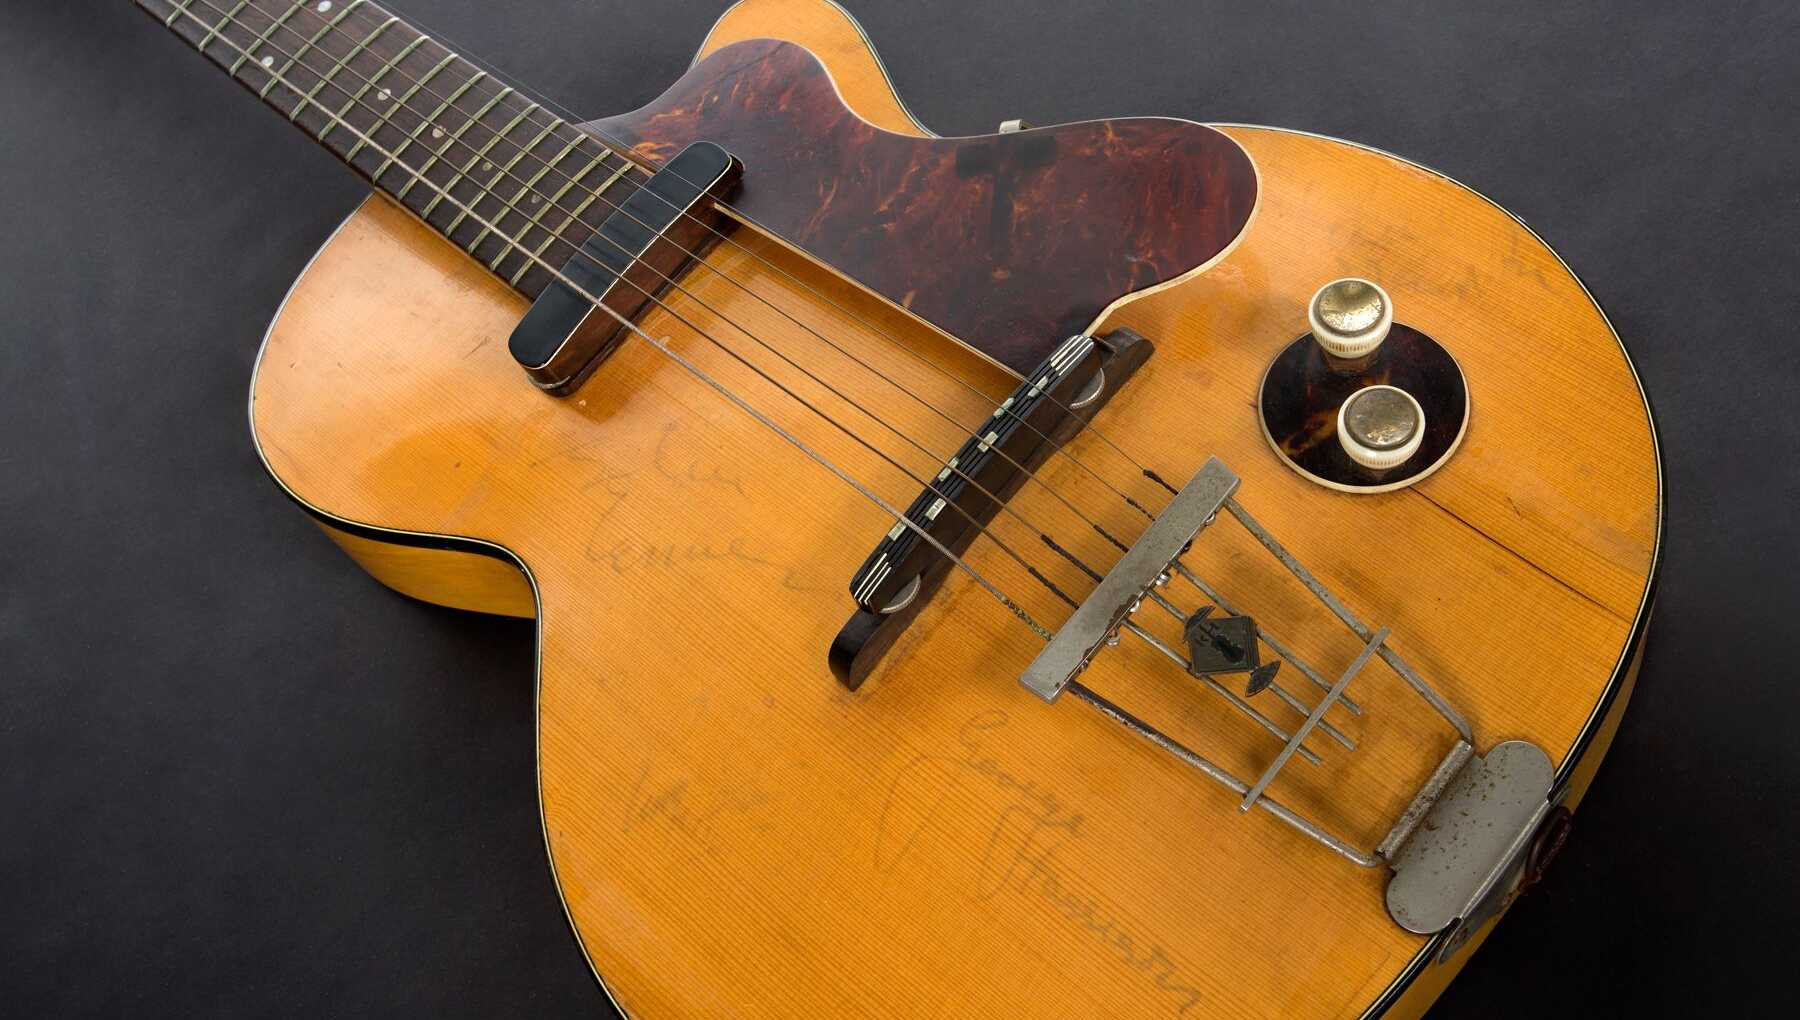 George Harrison's first electric guitar.